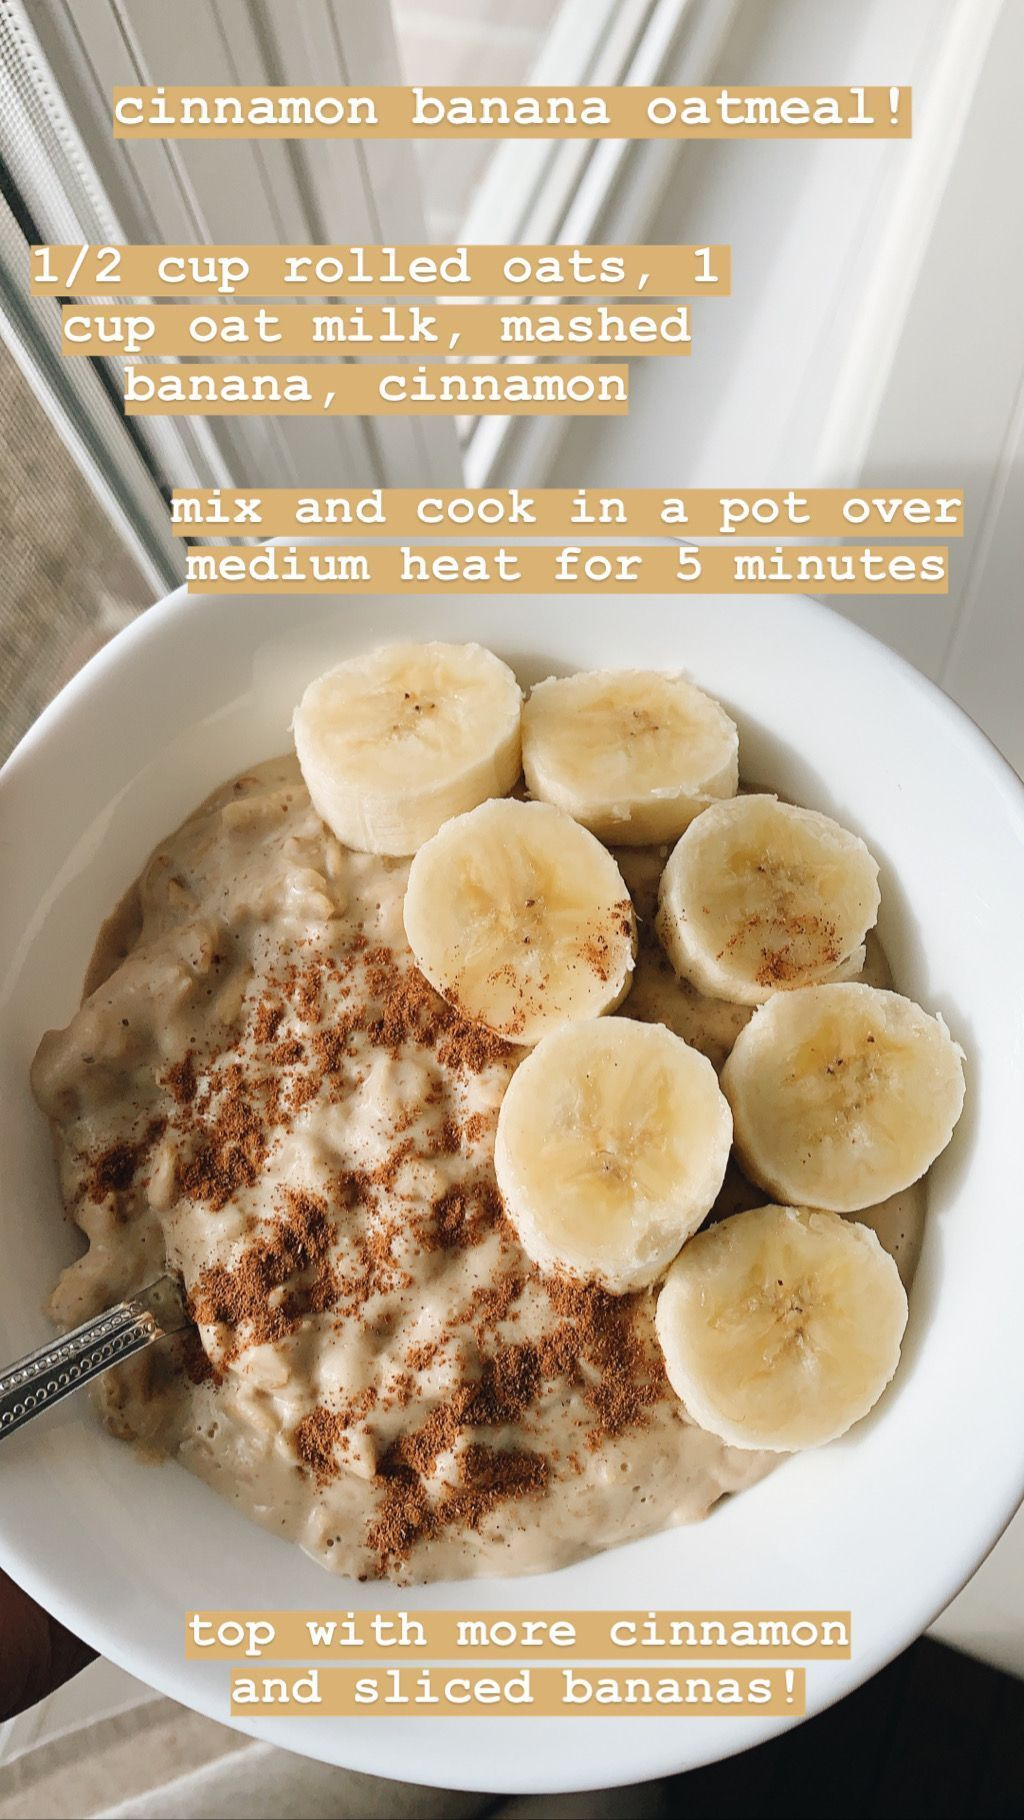 cinnamon banana oatmeal gluten and dairy free vegan vegetarian recipes easy an  cinnamon banana oatmeal gluten and dairy free vegan vegetarian recipes easy and quick scho...